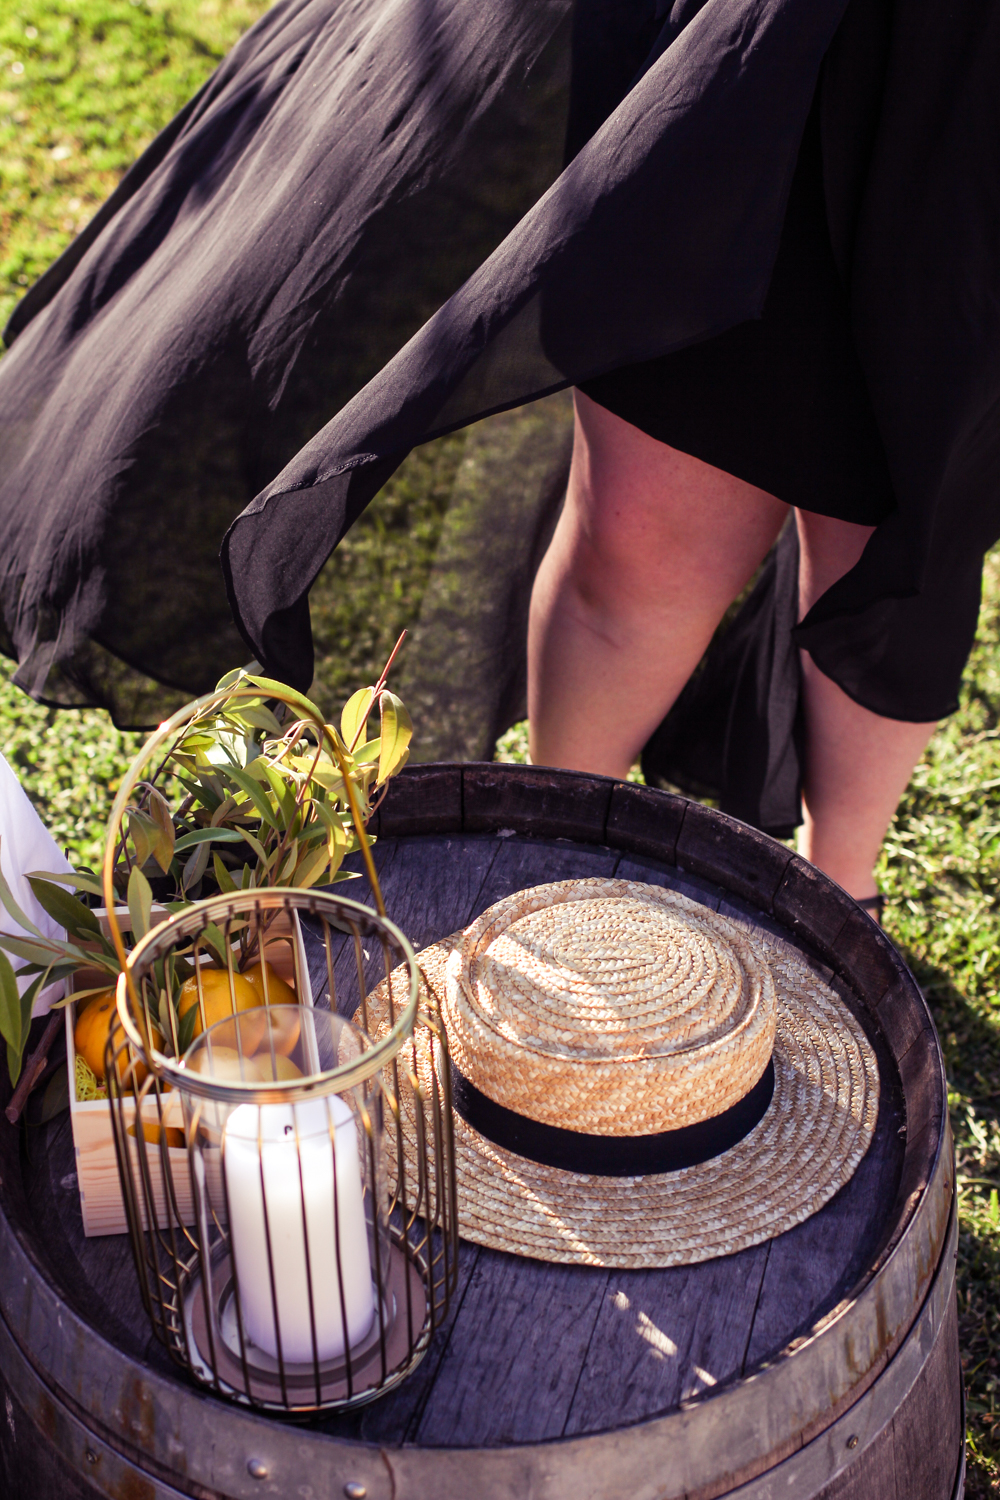 Liana of @findingfemme goes to a Pimm's topped dinner party